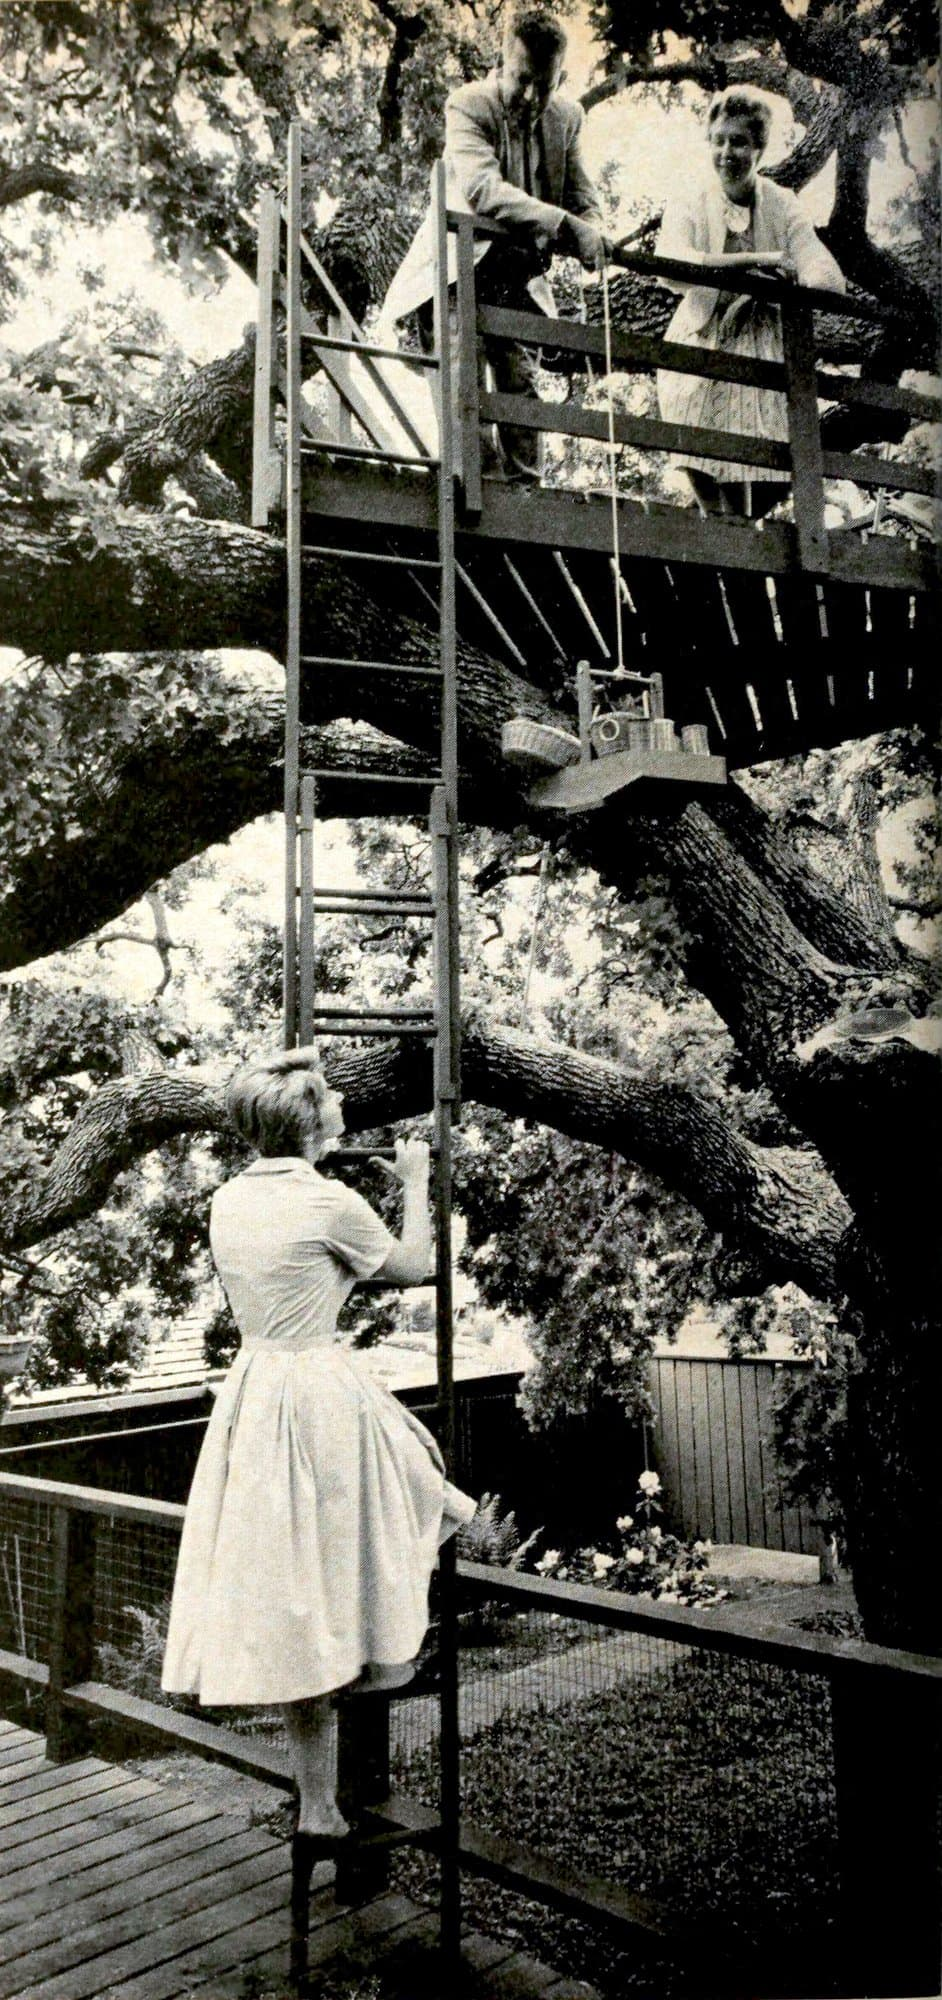 A vintage tree house for grown-ups (1961)